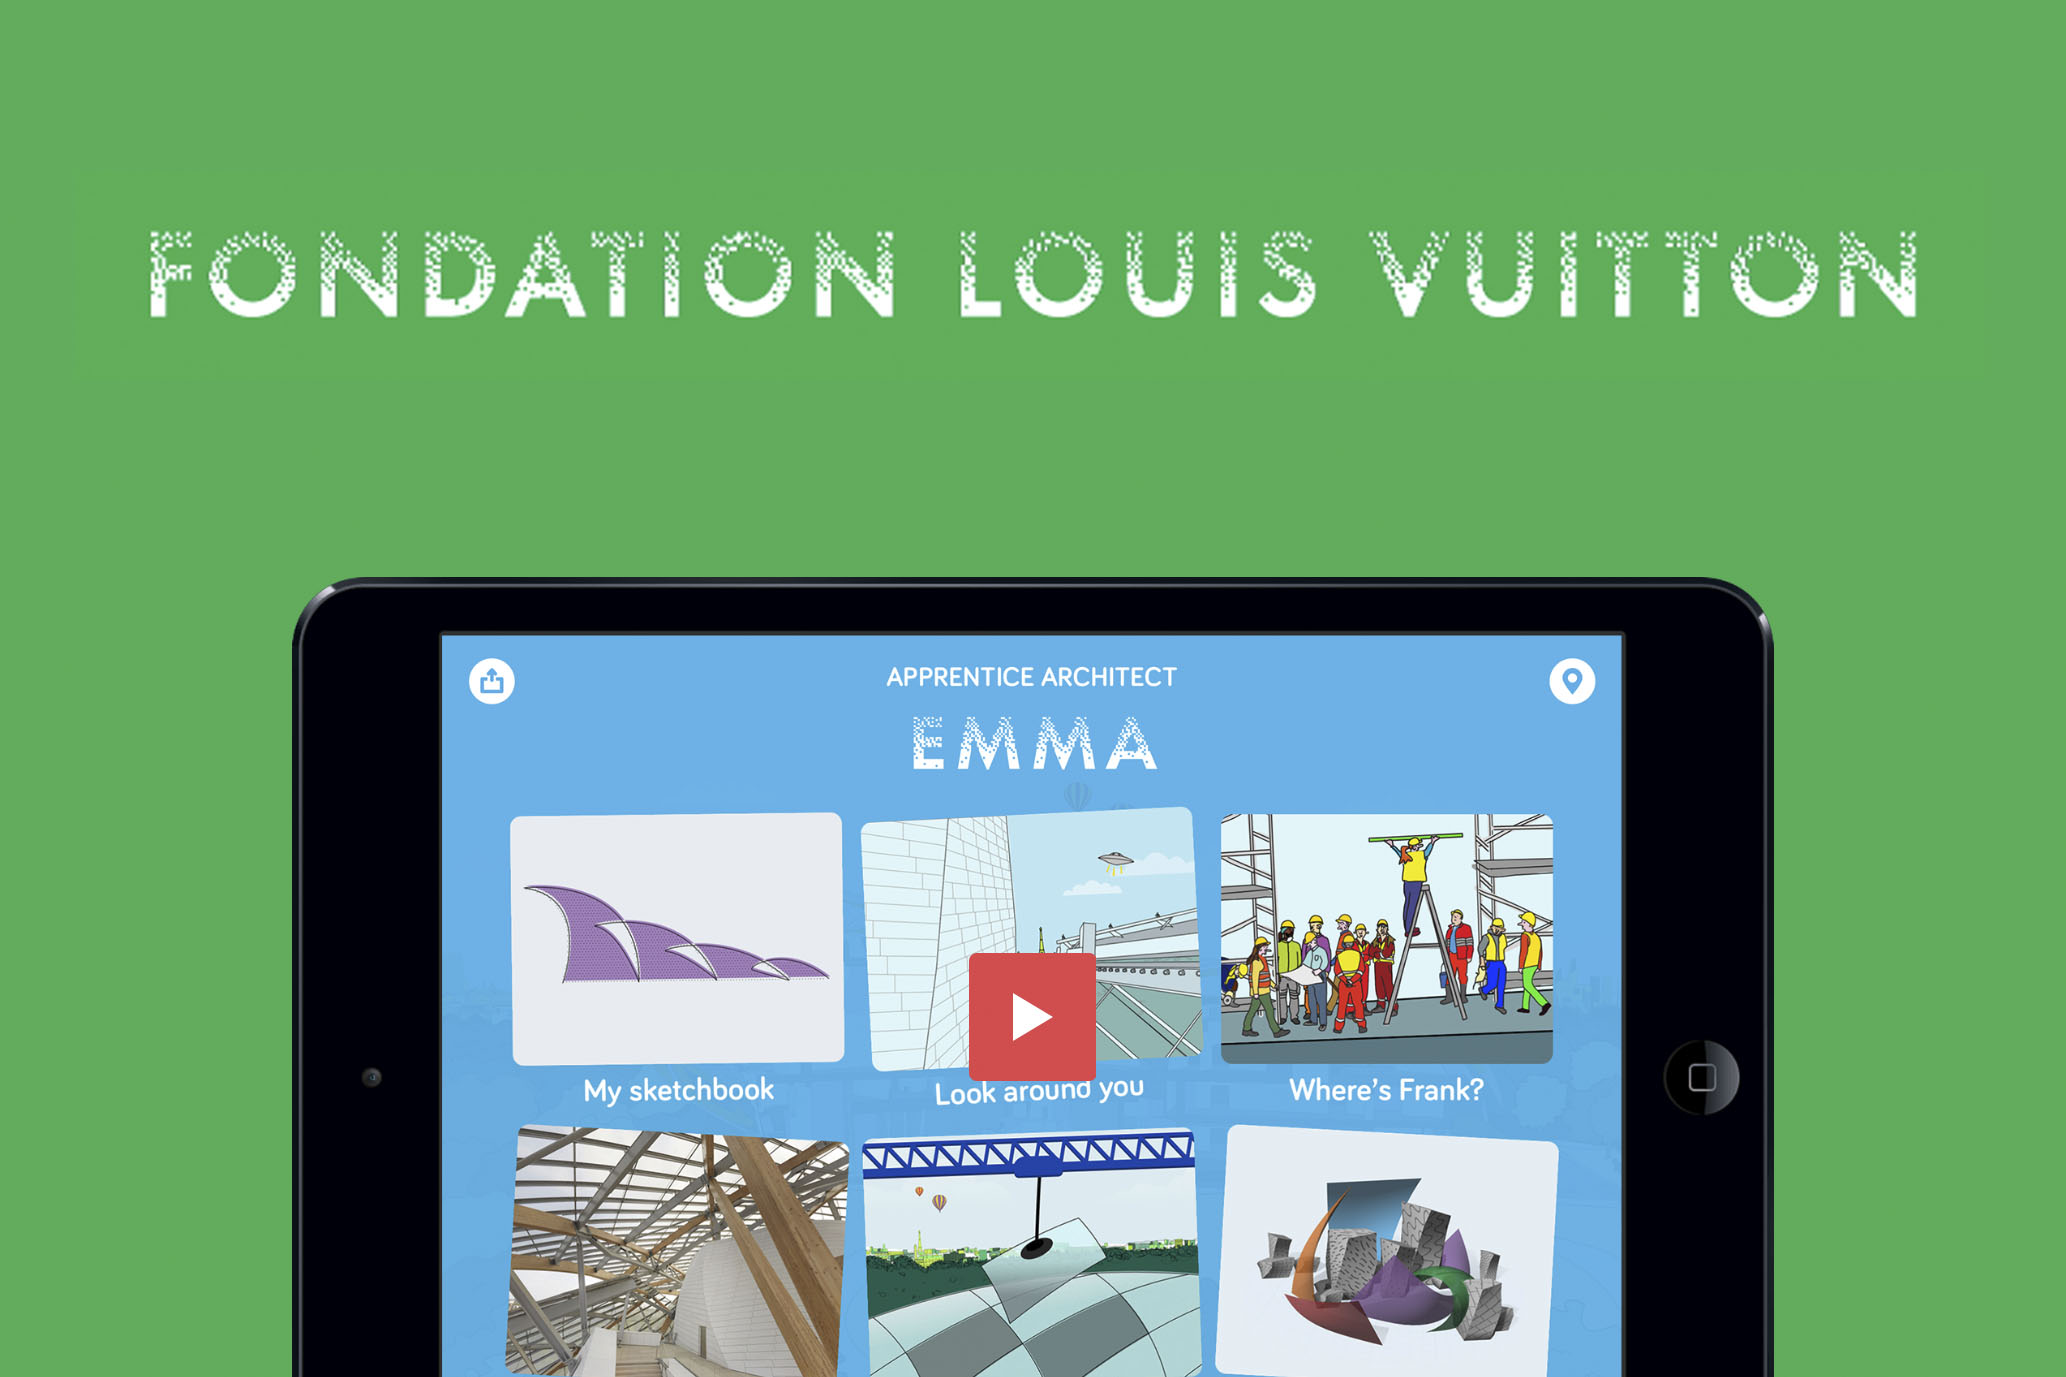 Apprentice Architect  – a kids app for the Foundation Louis Vuitton in Paris